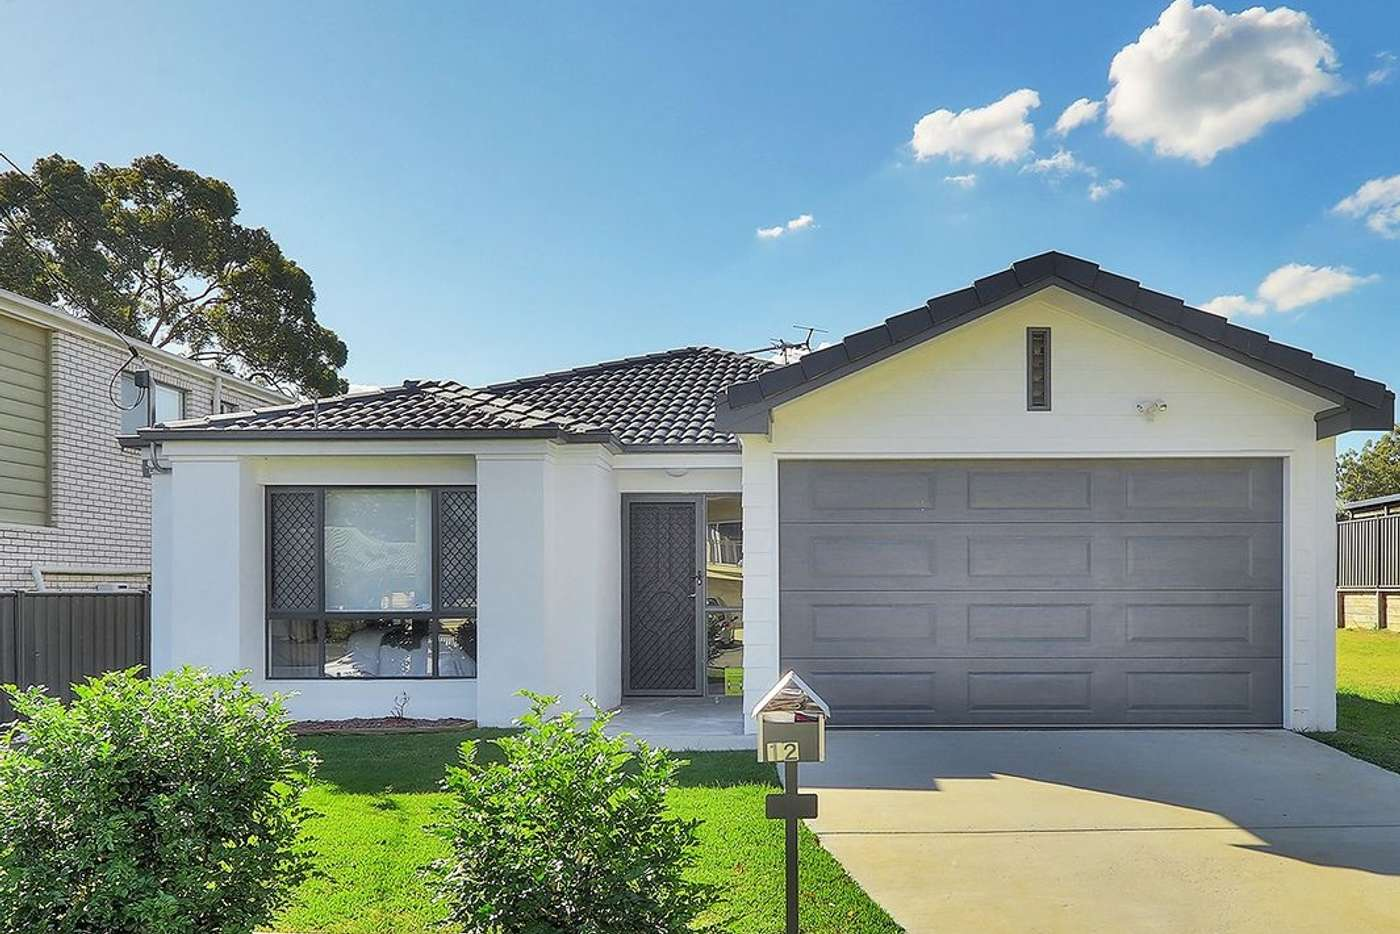 Main view of Homely house listing, 12 Everest Street, Sunnybank QLD 4109